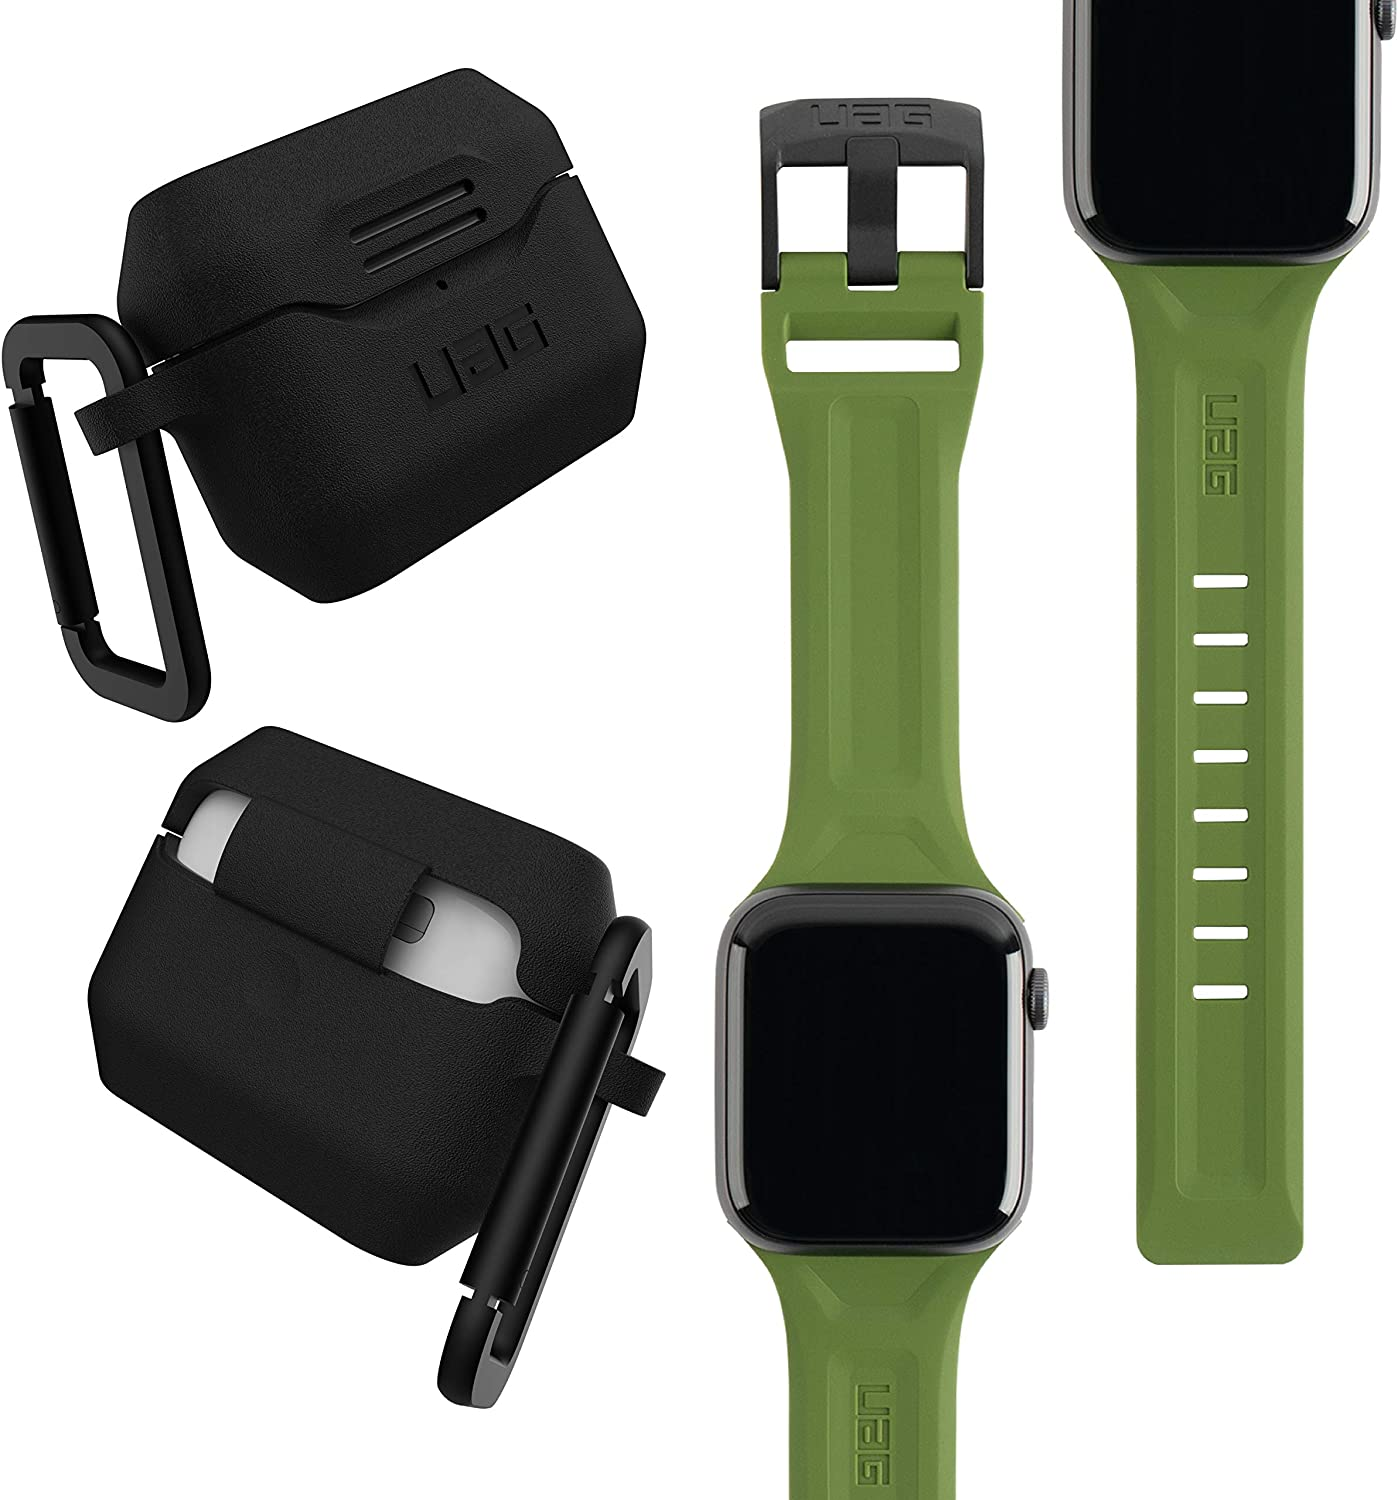 UAG Apple Watch Band 44mm 42mm, iWatch Series 6/5/4/Watch SE Replacement Strap, Scout Olive + AirPods Pro Case with Detachable Carabiner, Black